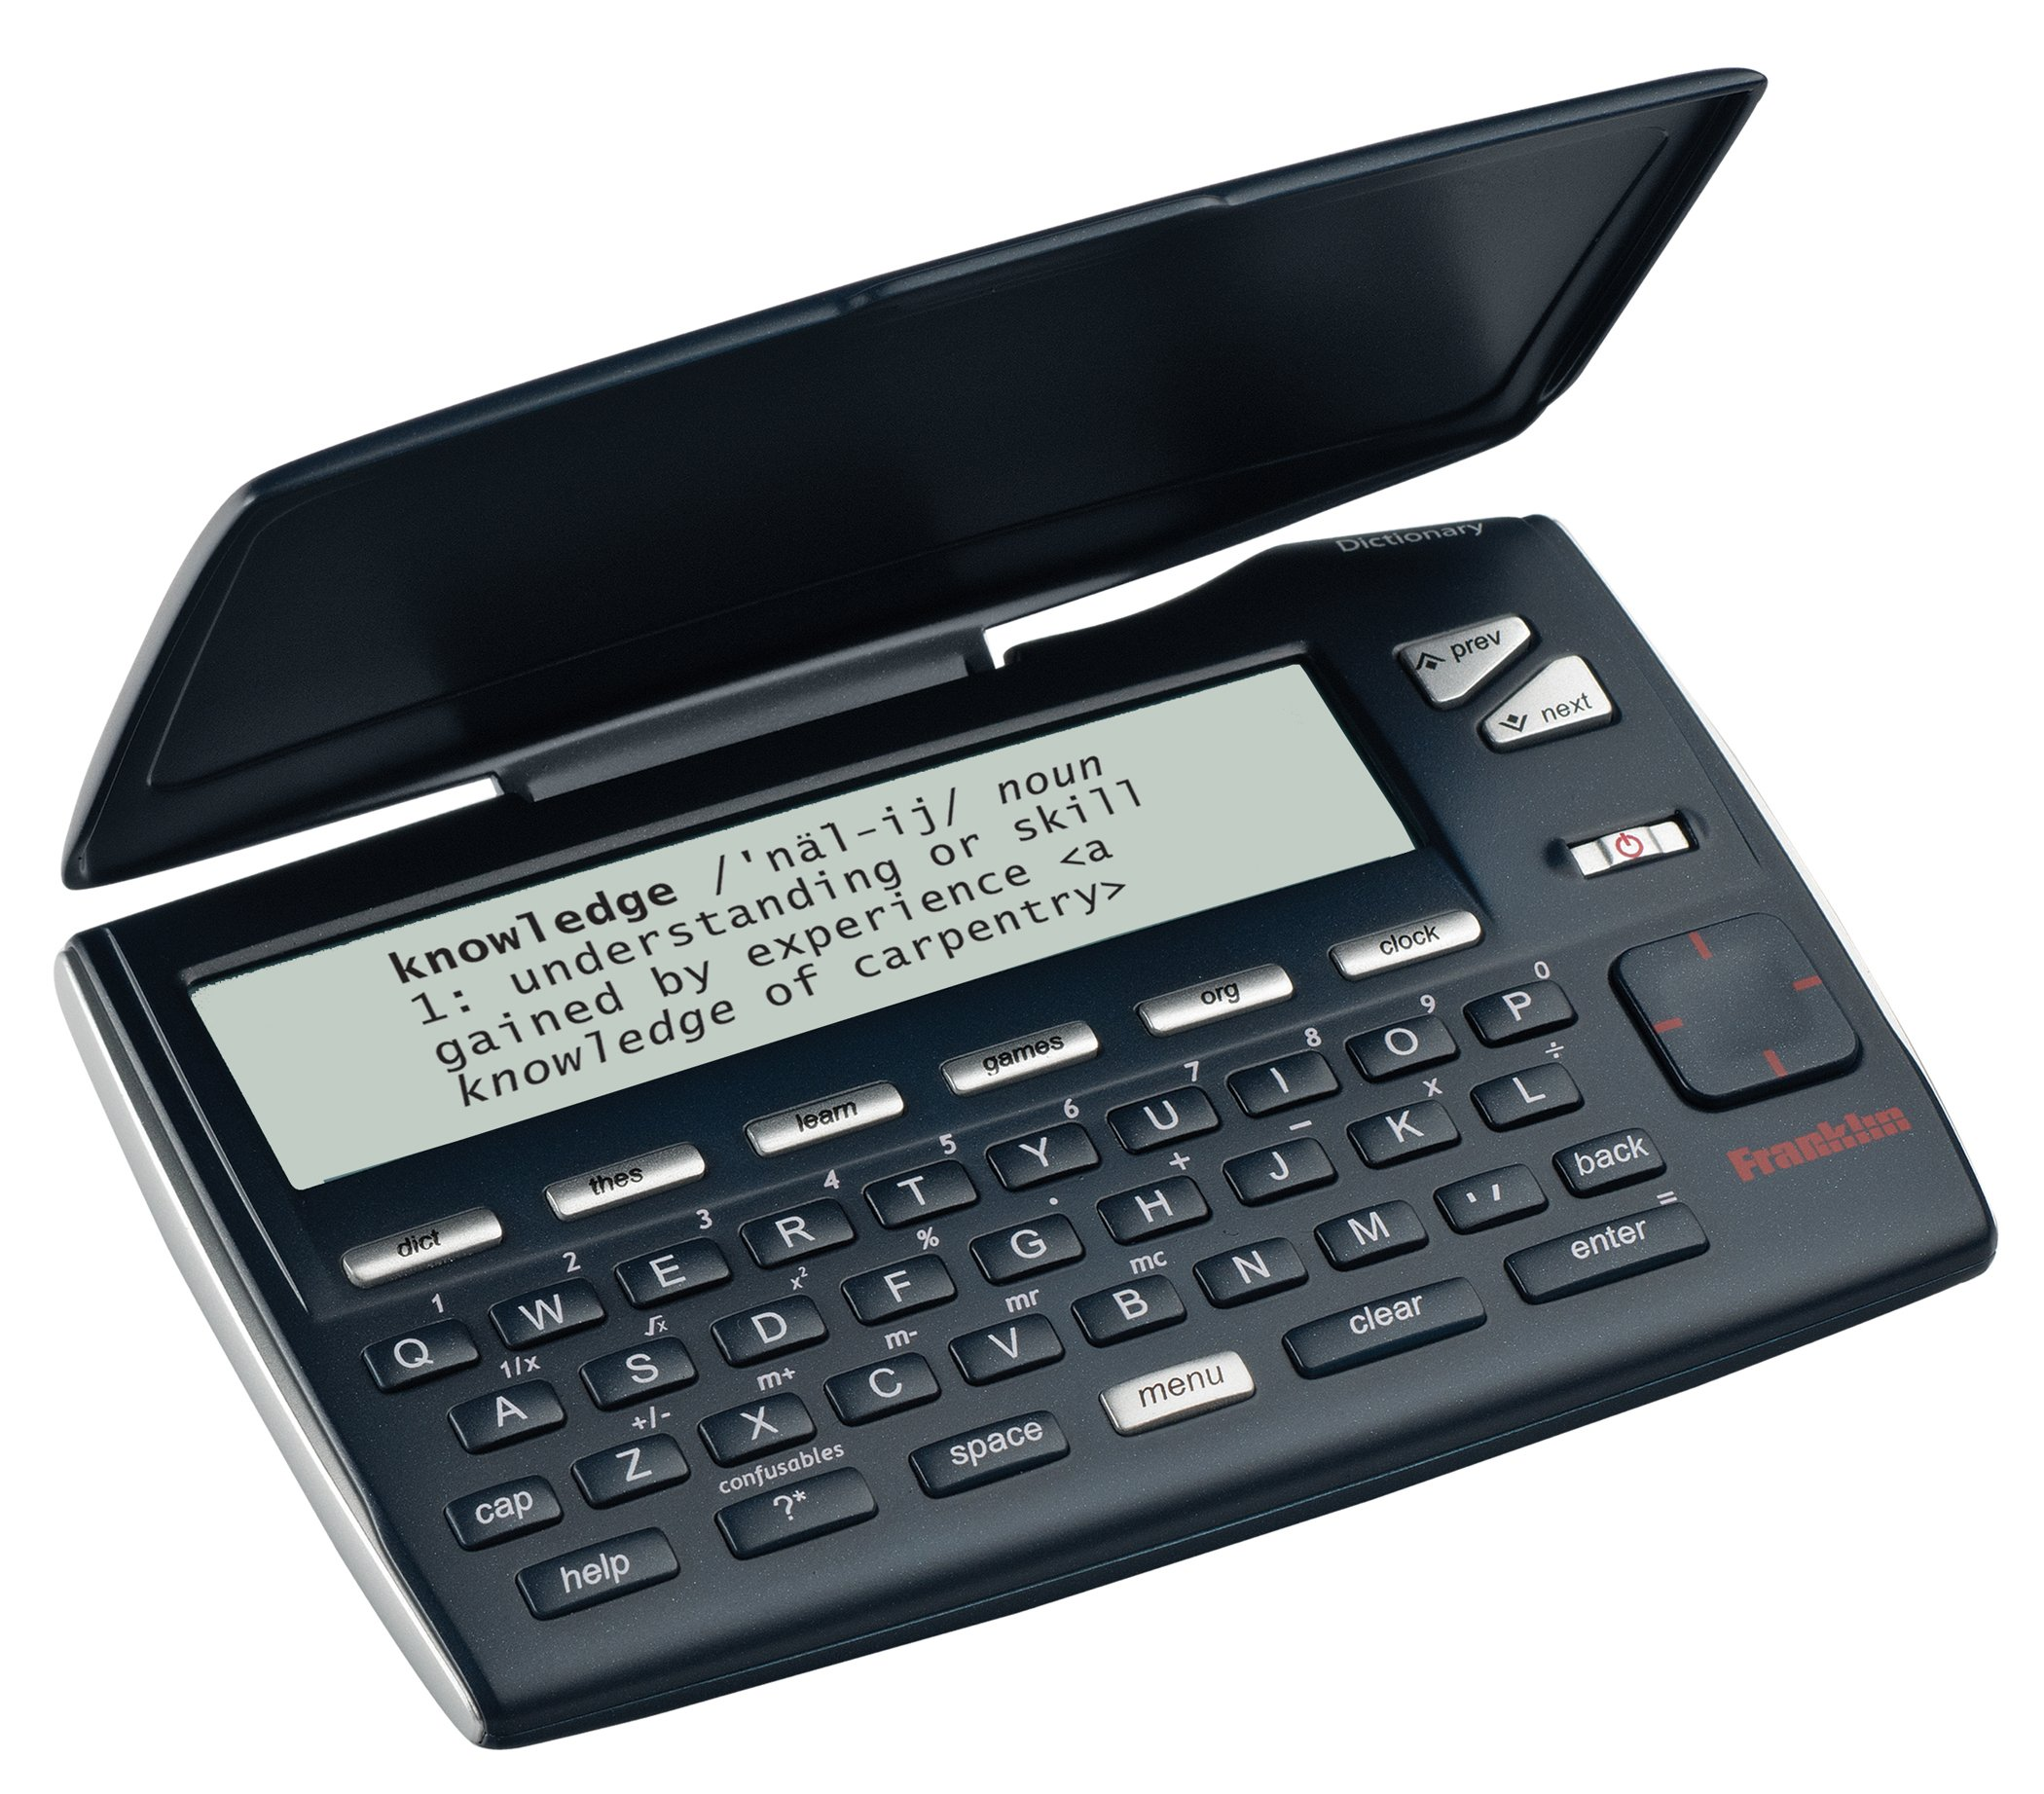 Franklin Electronics MWD-465 Merriam-Webster's Intermediate Dictionary Electronic Reference Device by Franklin Electronics